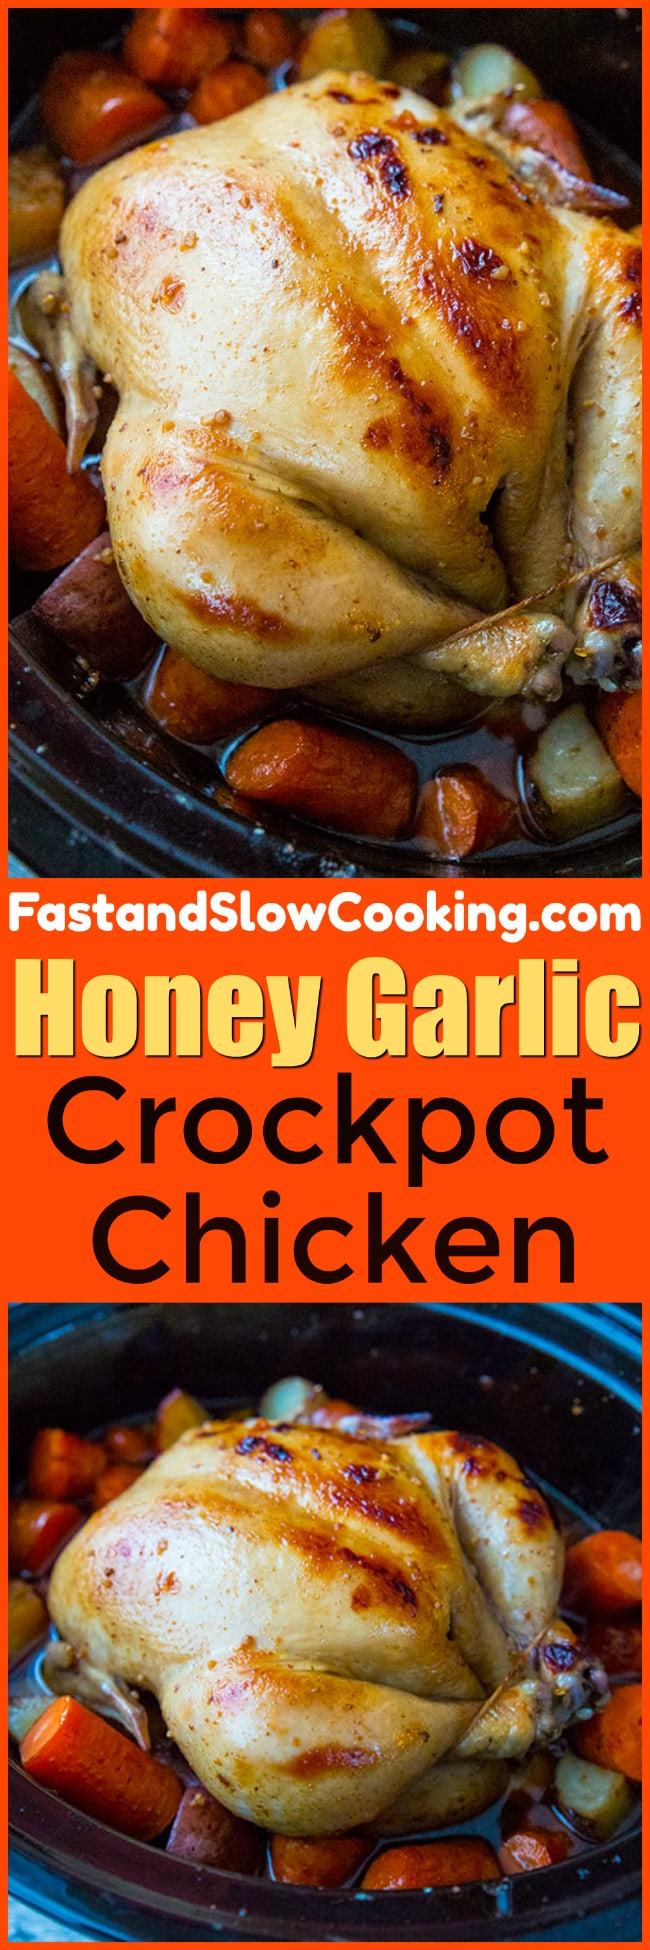 Honey Garlic Crockpot Chicken and Vegetables